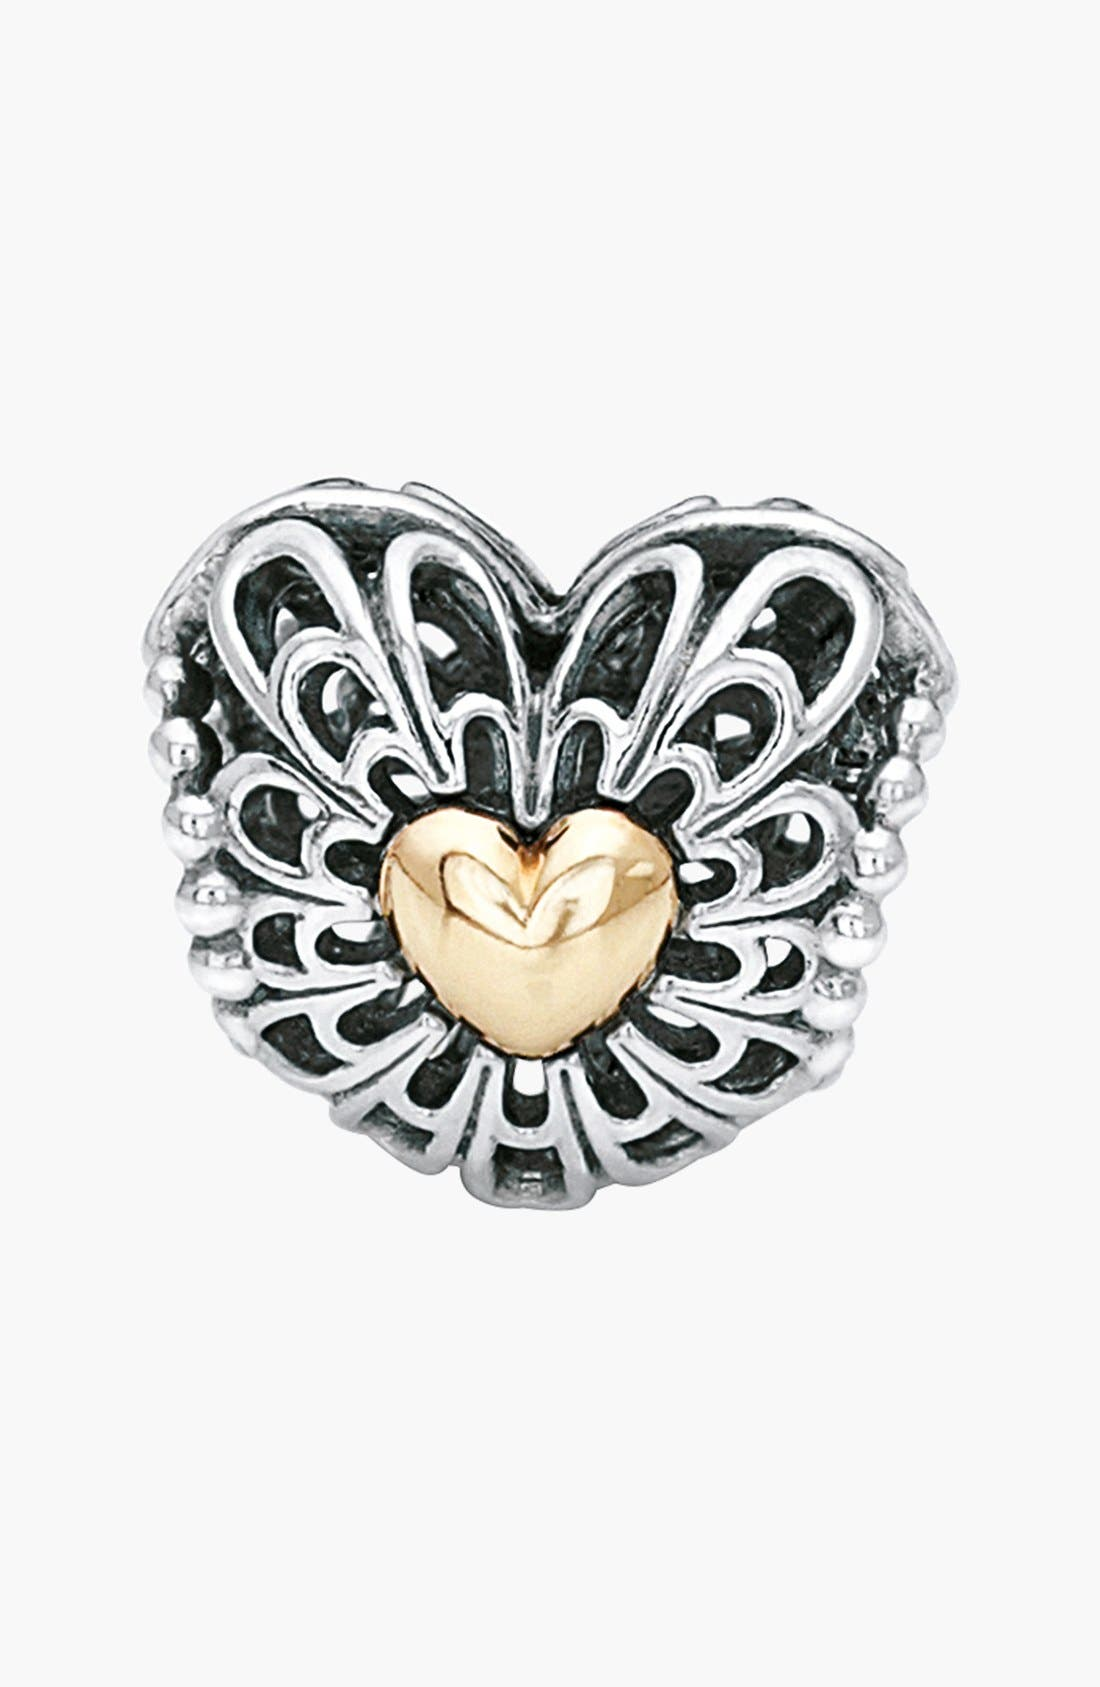 Alternate Image 1 Selected - PANDORA 'Vintage Heart' Two-Tone Bead Charm